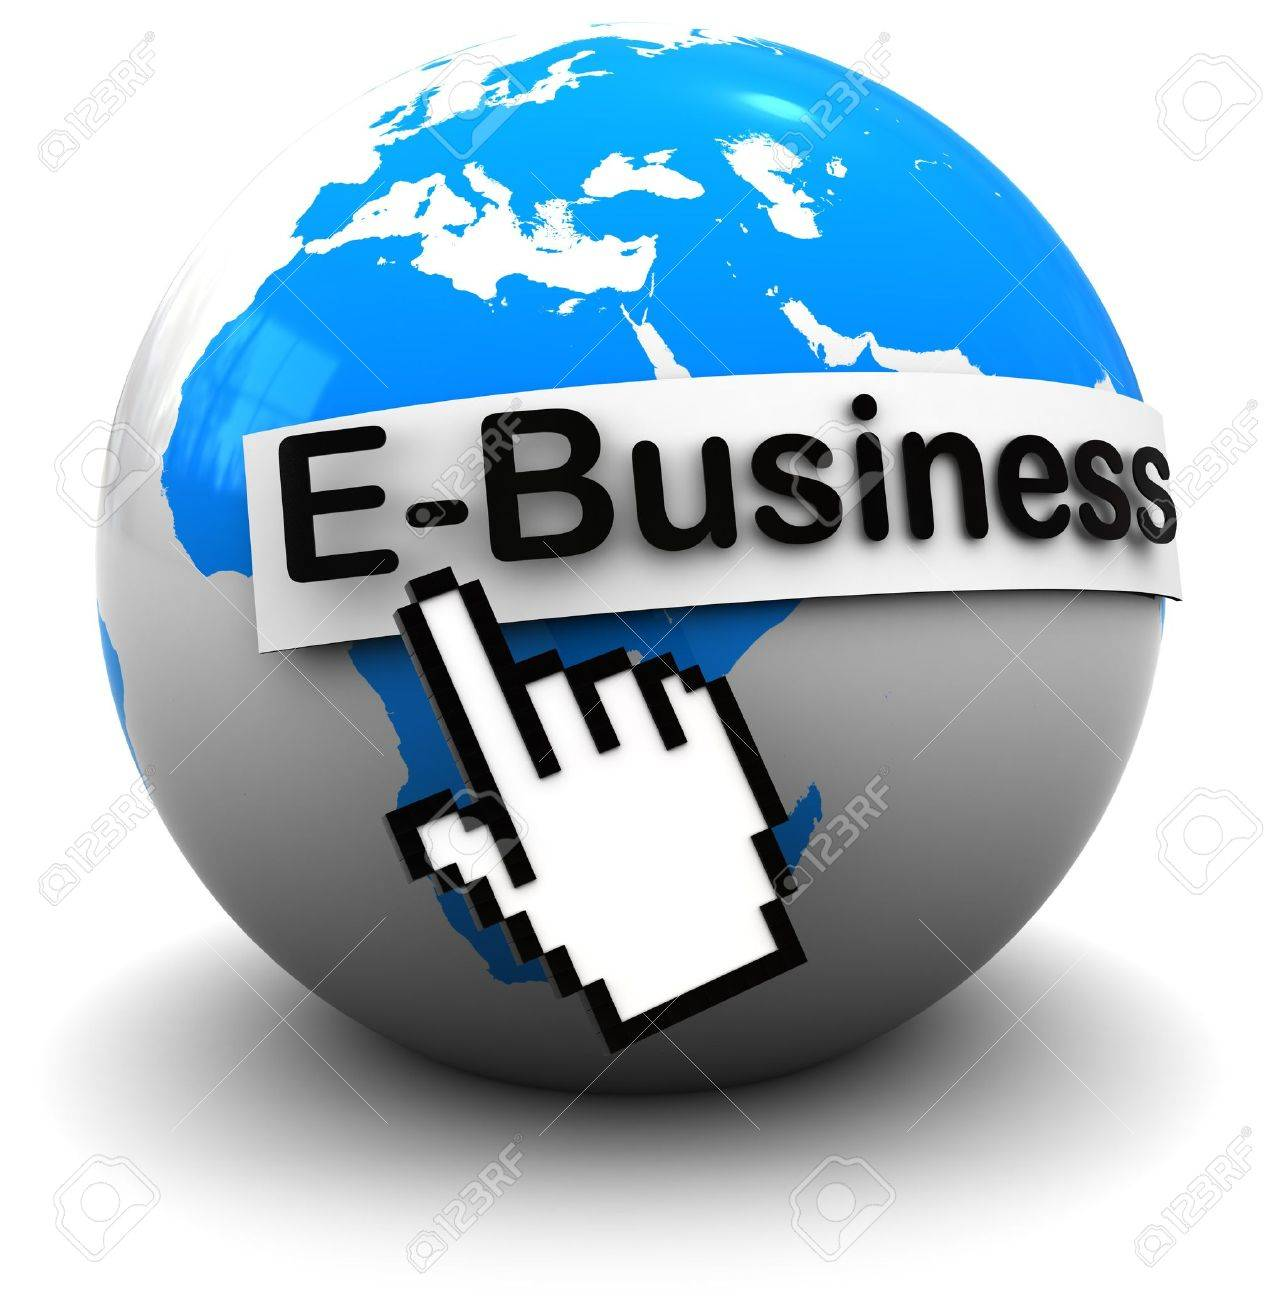 3d illustration of earth globe with internet business sign, over white background Stock Illustration - 7291394